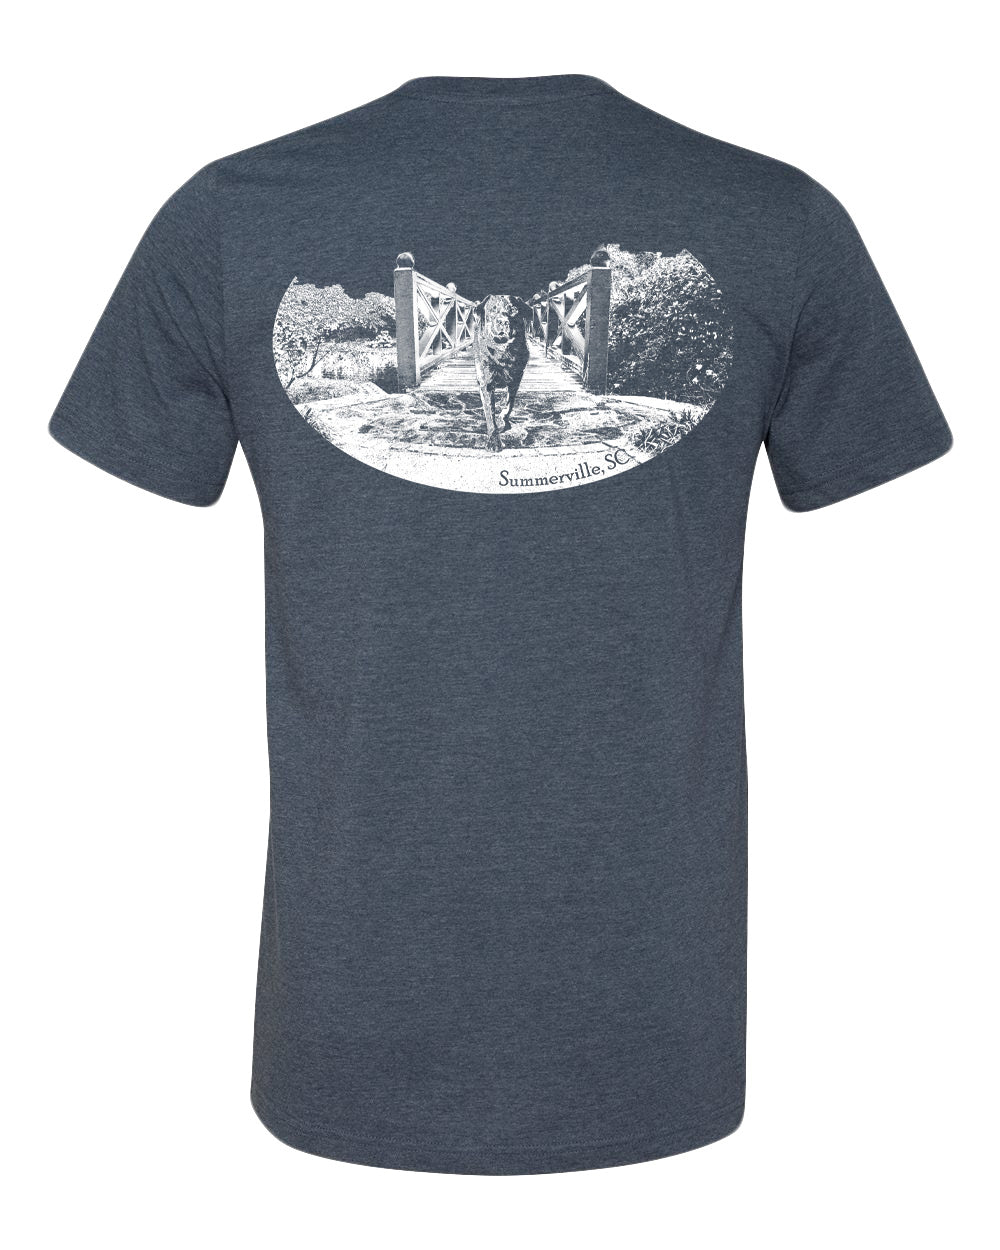 Summerville Short Sleeve T-shirt